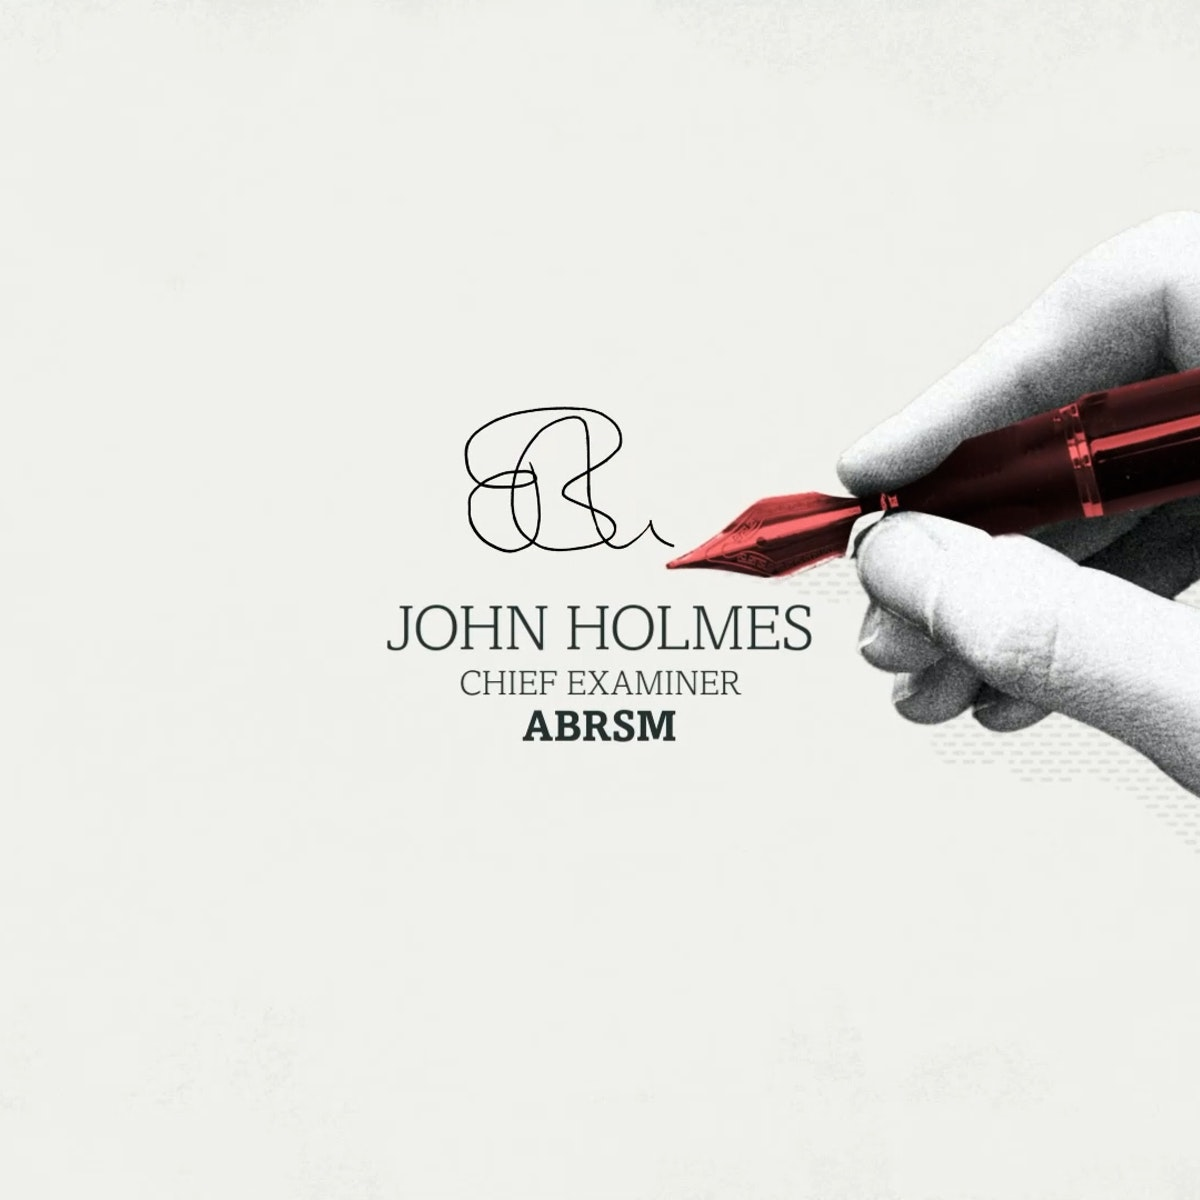 A finished frame from ABRSM Music Theory Animation showing John Holmes signature, with a hand and a fountain pen in front